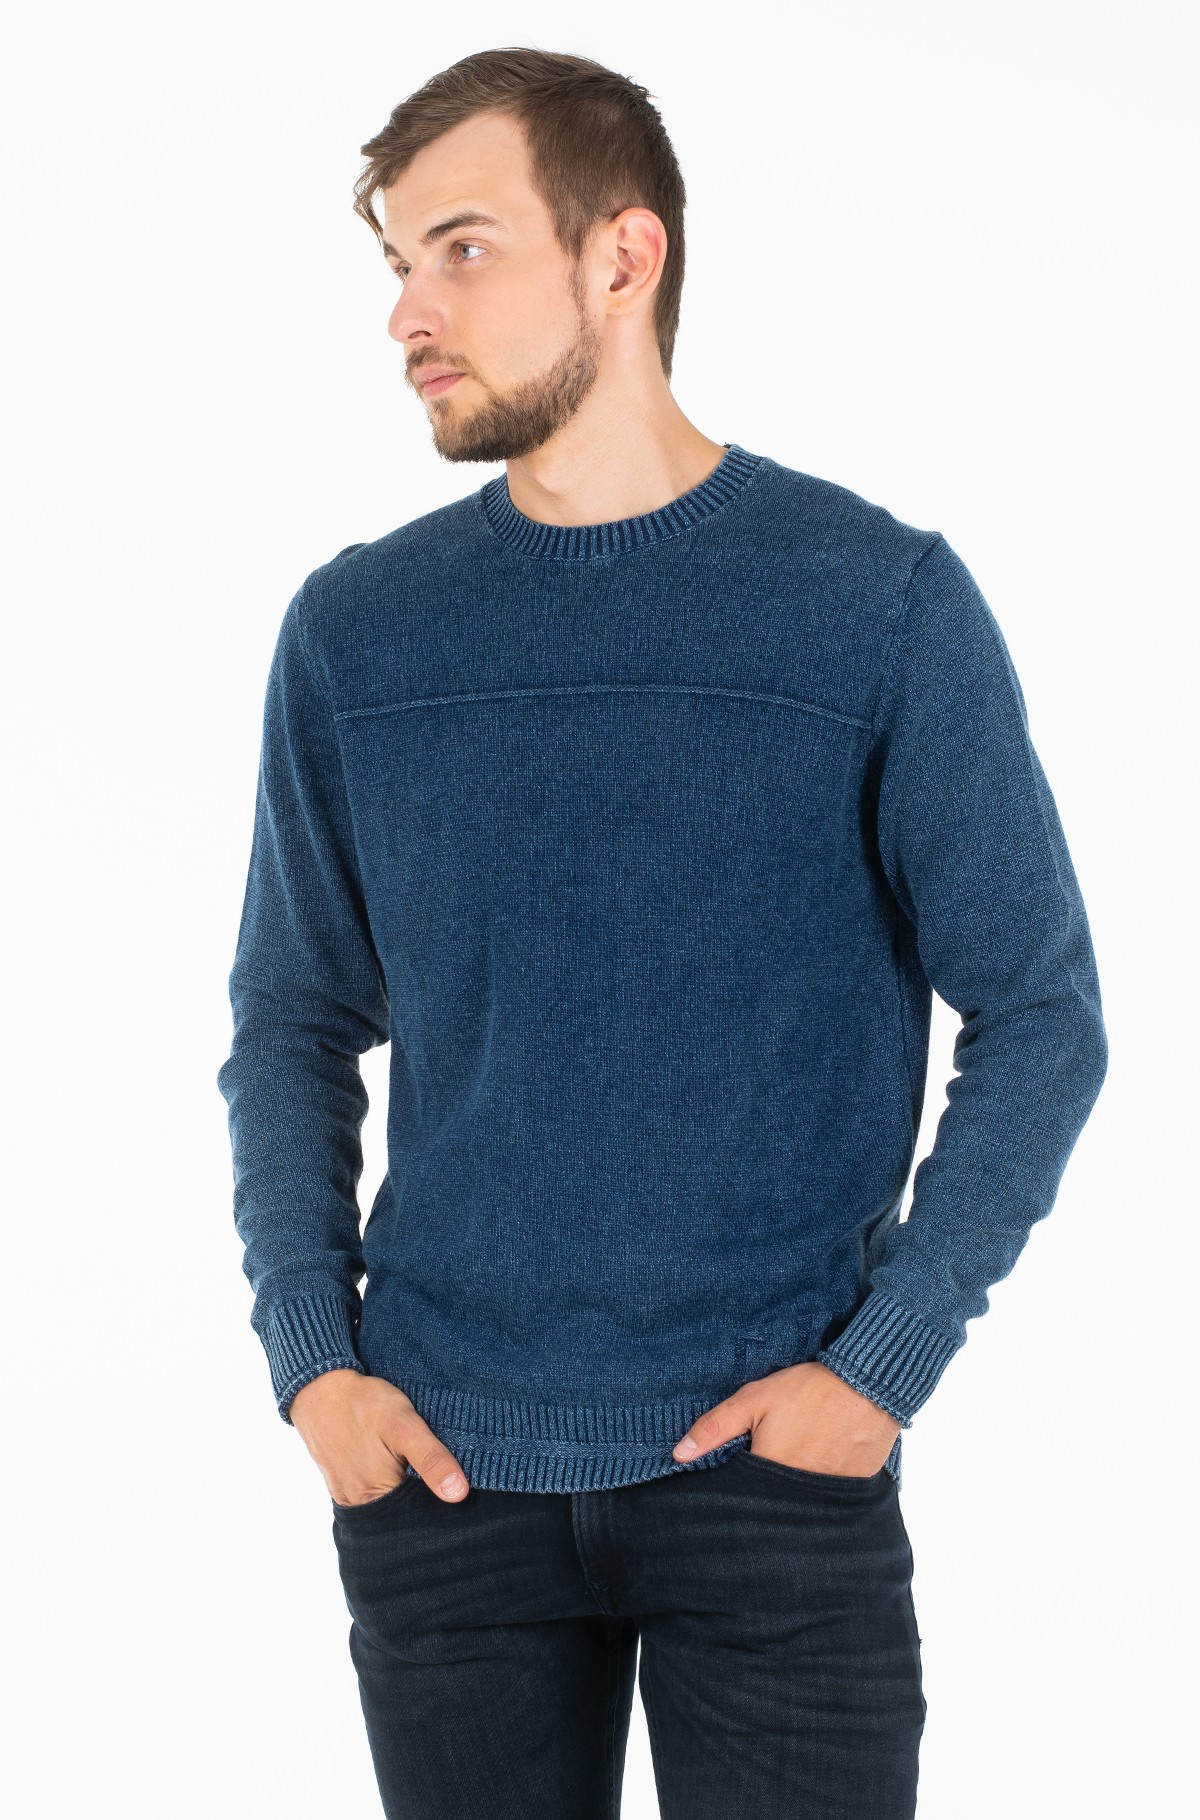 Sweater ROBERTO/PM701936-full-1